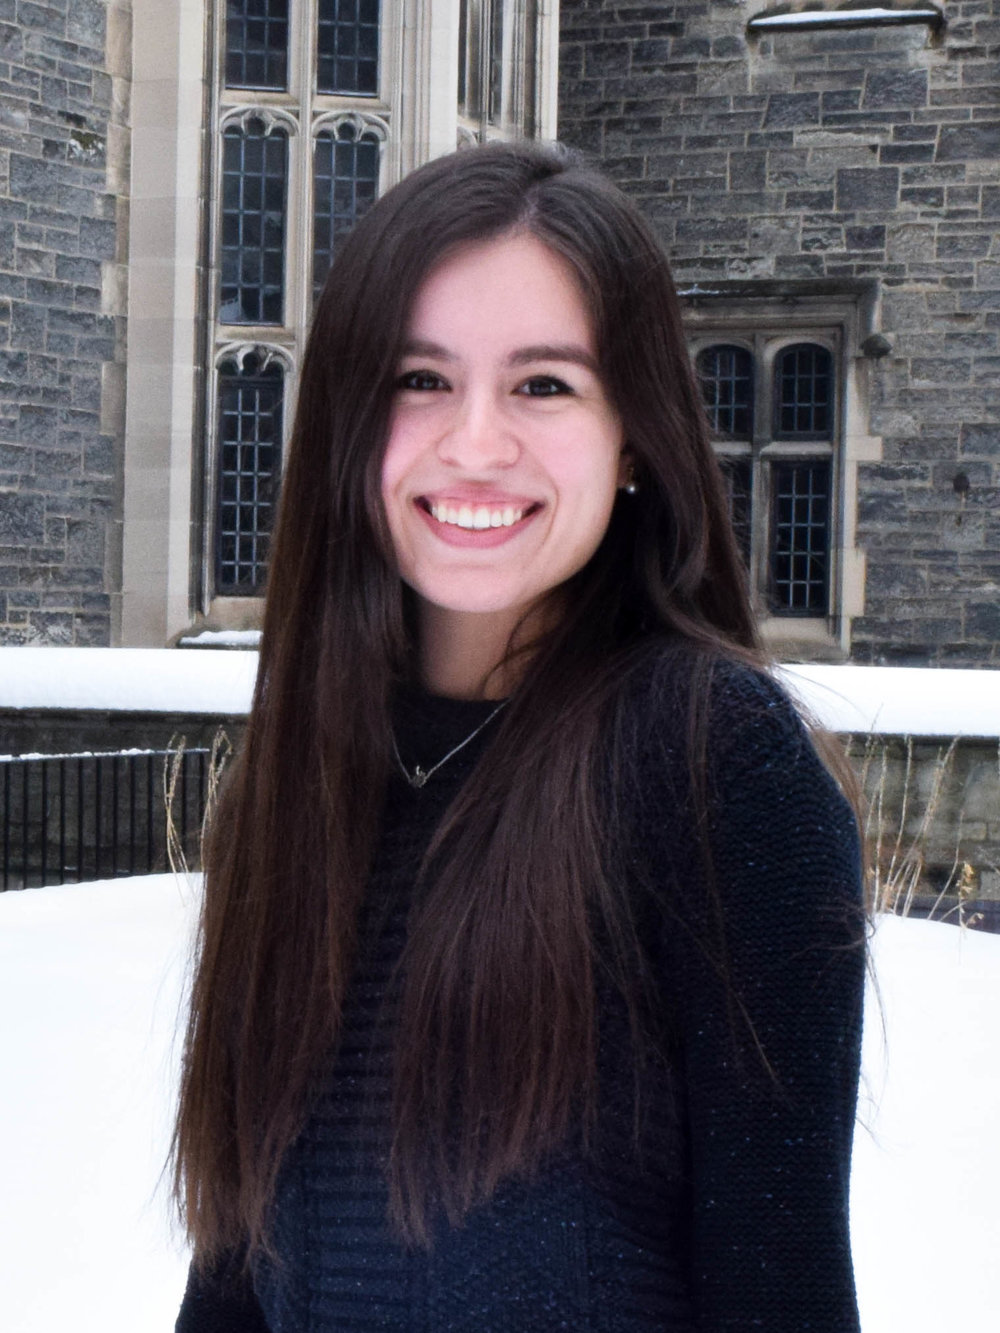 Vania Canales-Canales is in her fourth and final year at the University of Toronto where she is completing a major in Human Geography and minors in Political Science and in Latin American Studies. Her interests include global affairs, digital marketing, and voting behavior. She has previously interned with U.S PIRG's democracy initiative where she helped campaign to reduce the influence of big money in politics. She has been a videographer for University of Toronto's Student Life Communications, and aspires to work in Marketing in the nearby future.